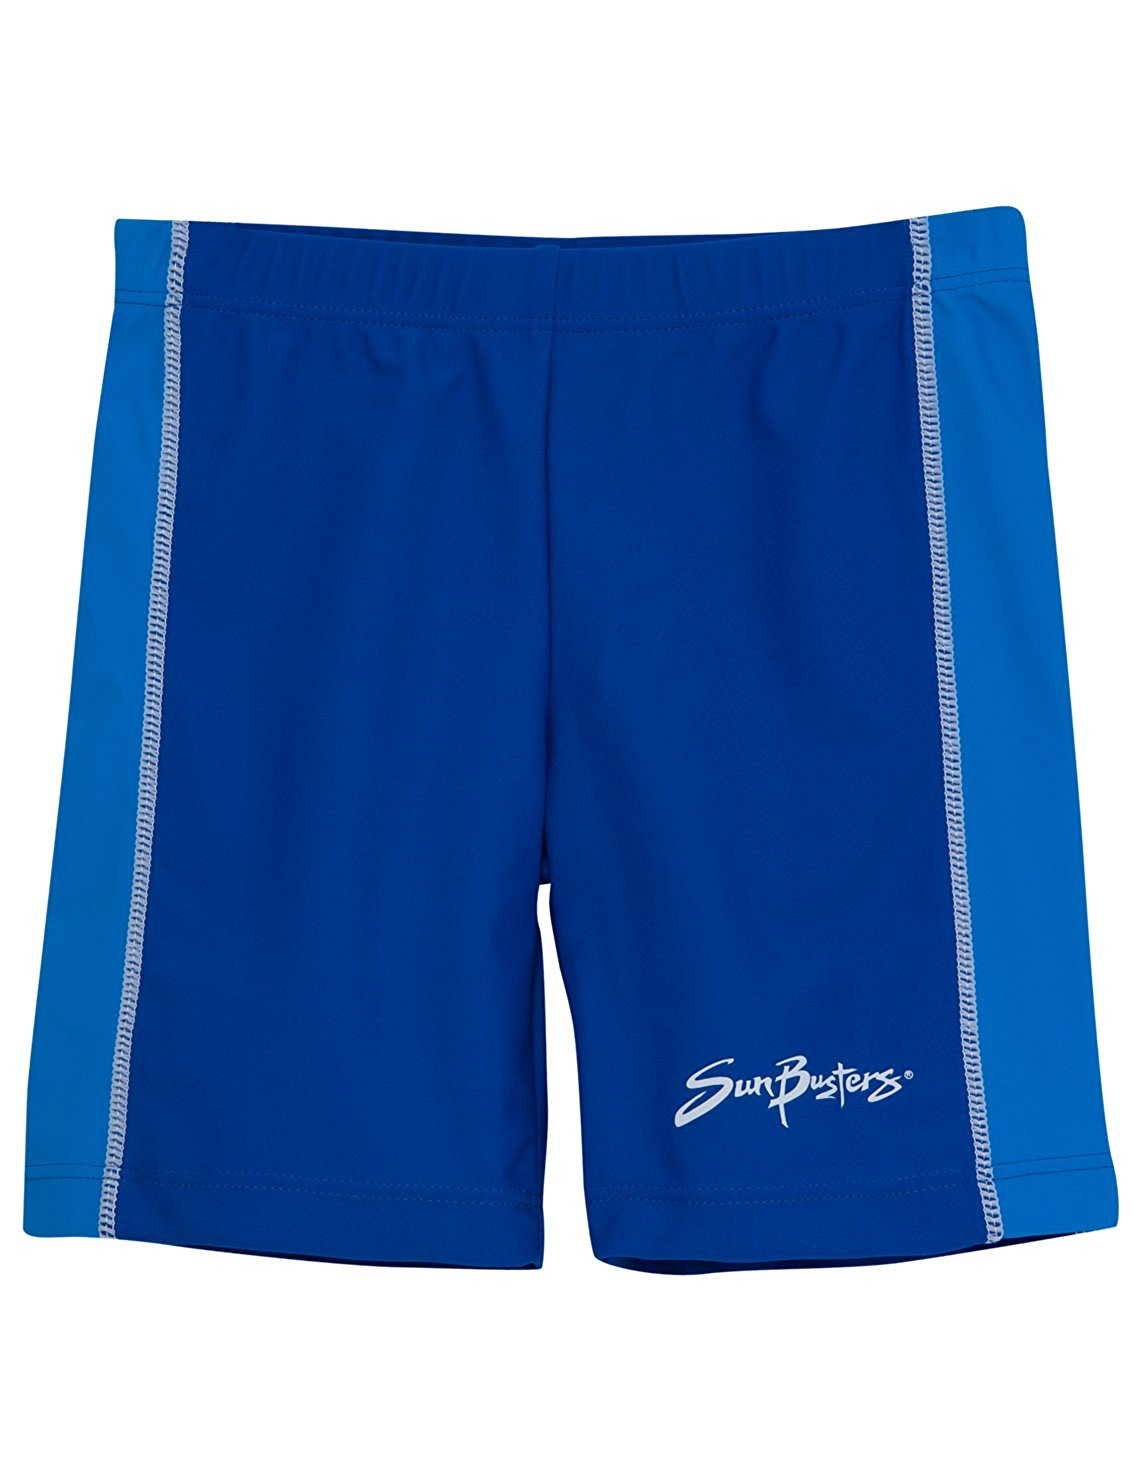 swim short amazon.com: sunbusters boys swim shorts 12 mos - 12 yrs, upf 50+ sun kexhfgs